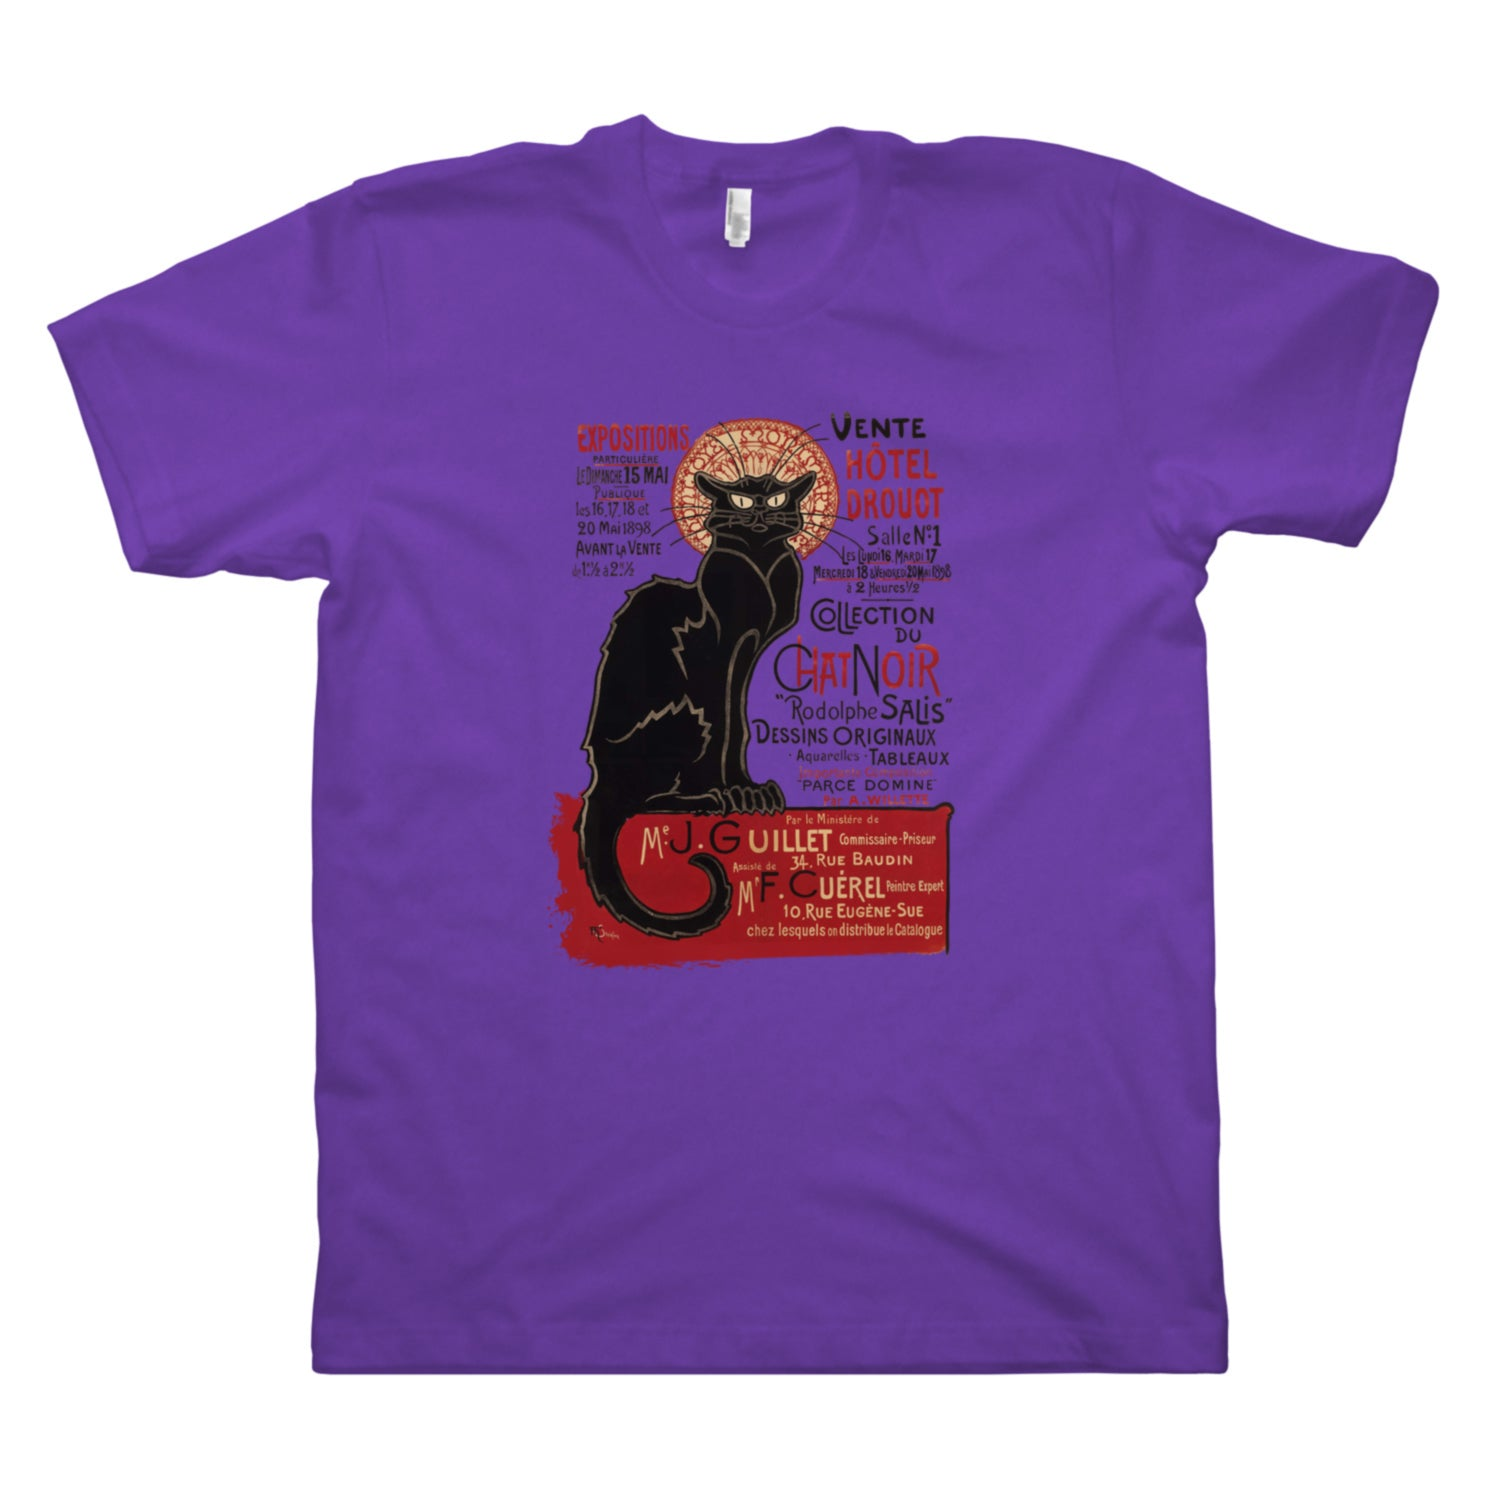 Collection of the Chat Noir (Collection du Chat Noir)